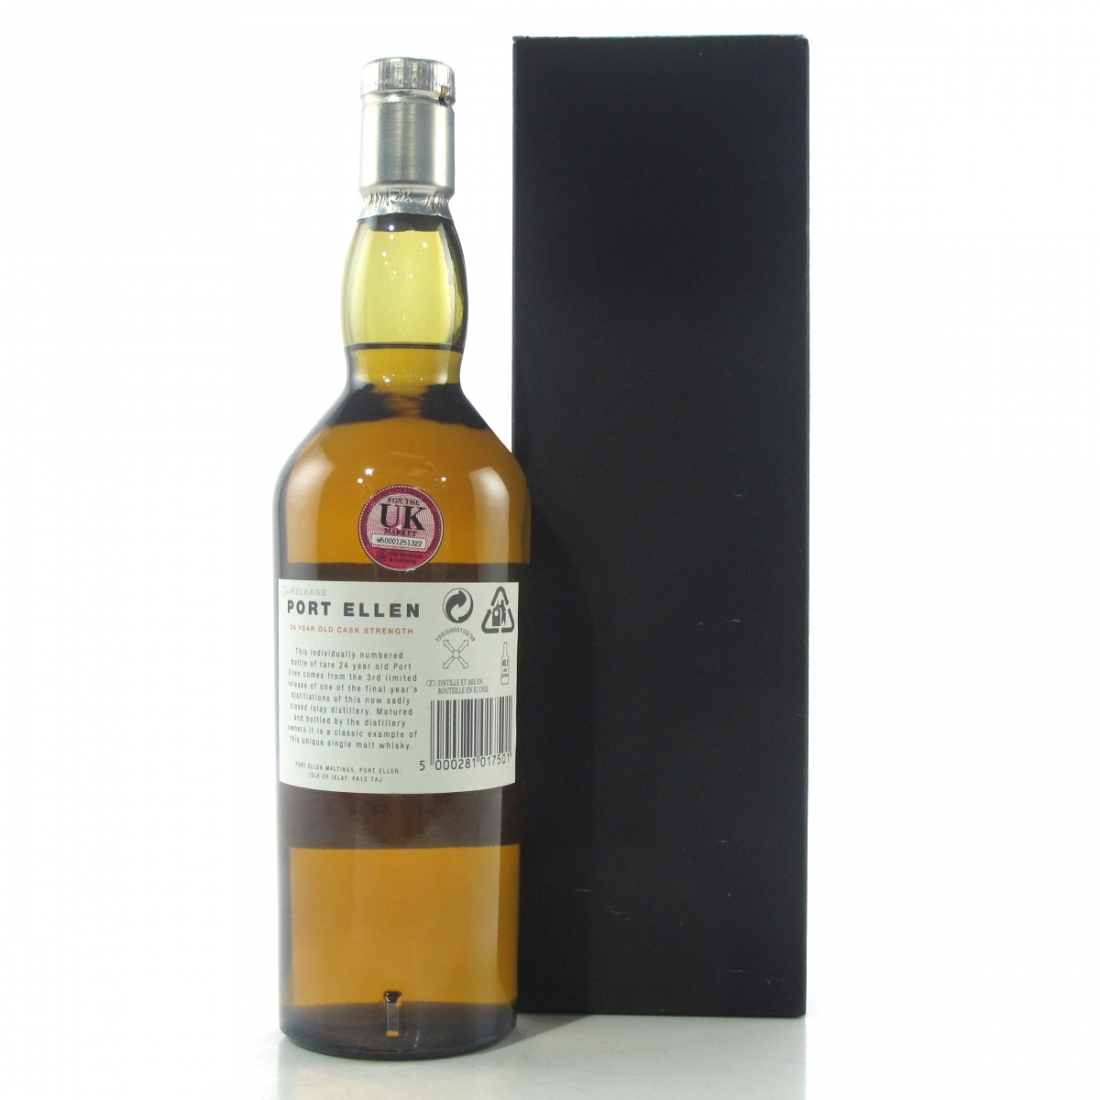 Port Ellen 1979 24 Year Old 3rd Release